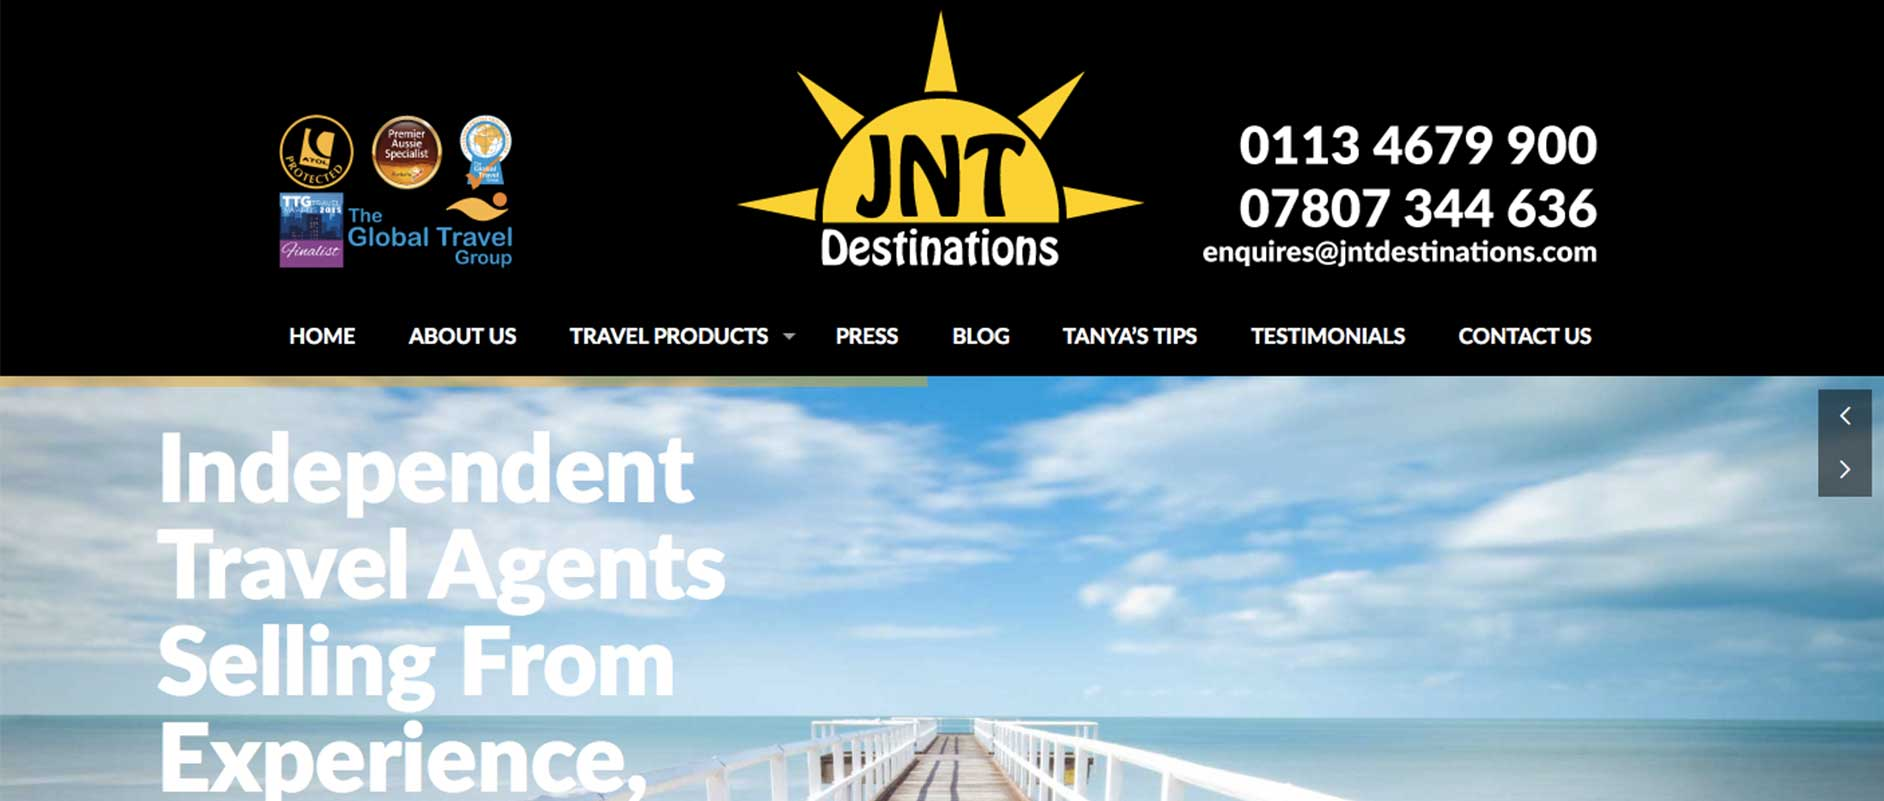 JNT Destinations - Media29 - Affordable Websites & Low